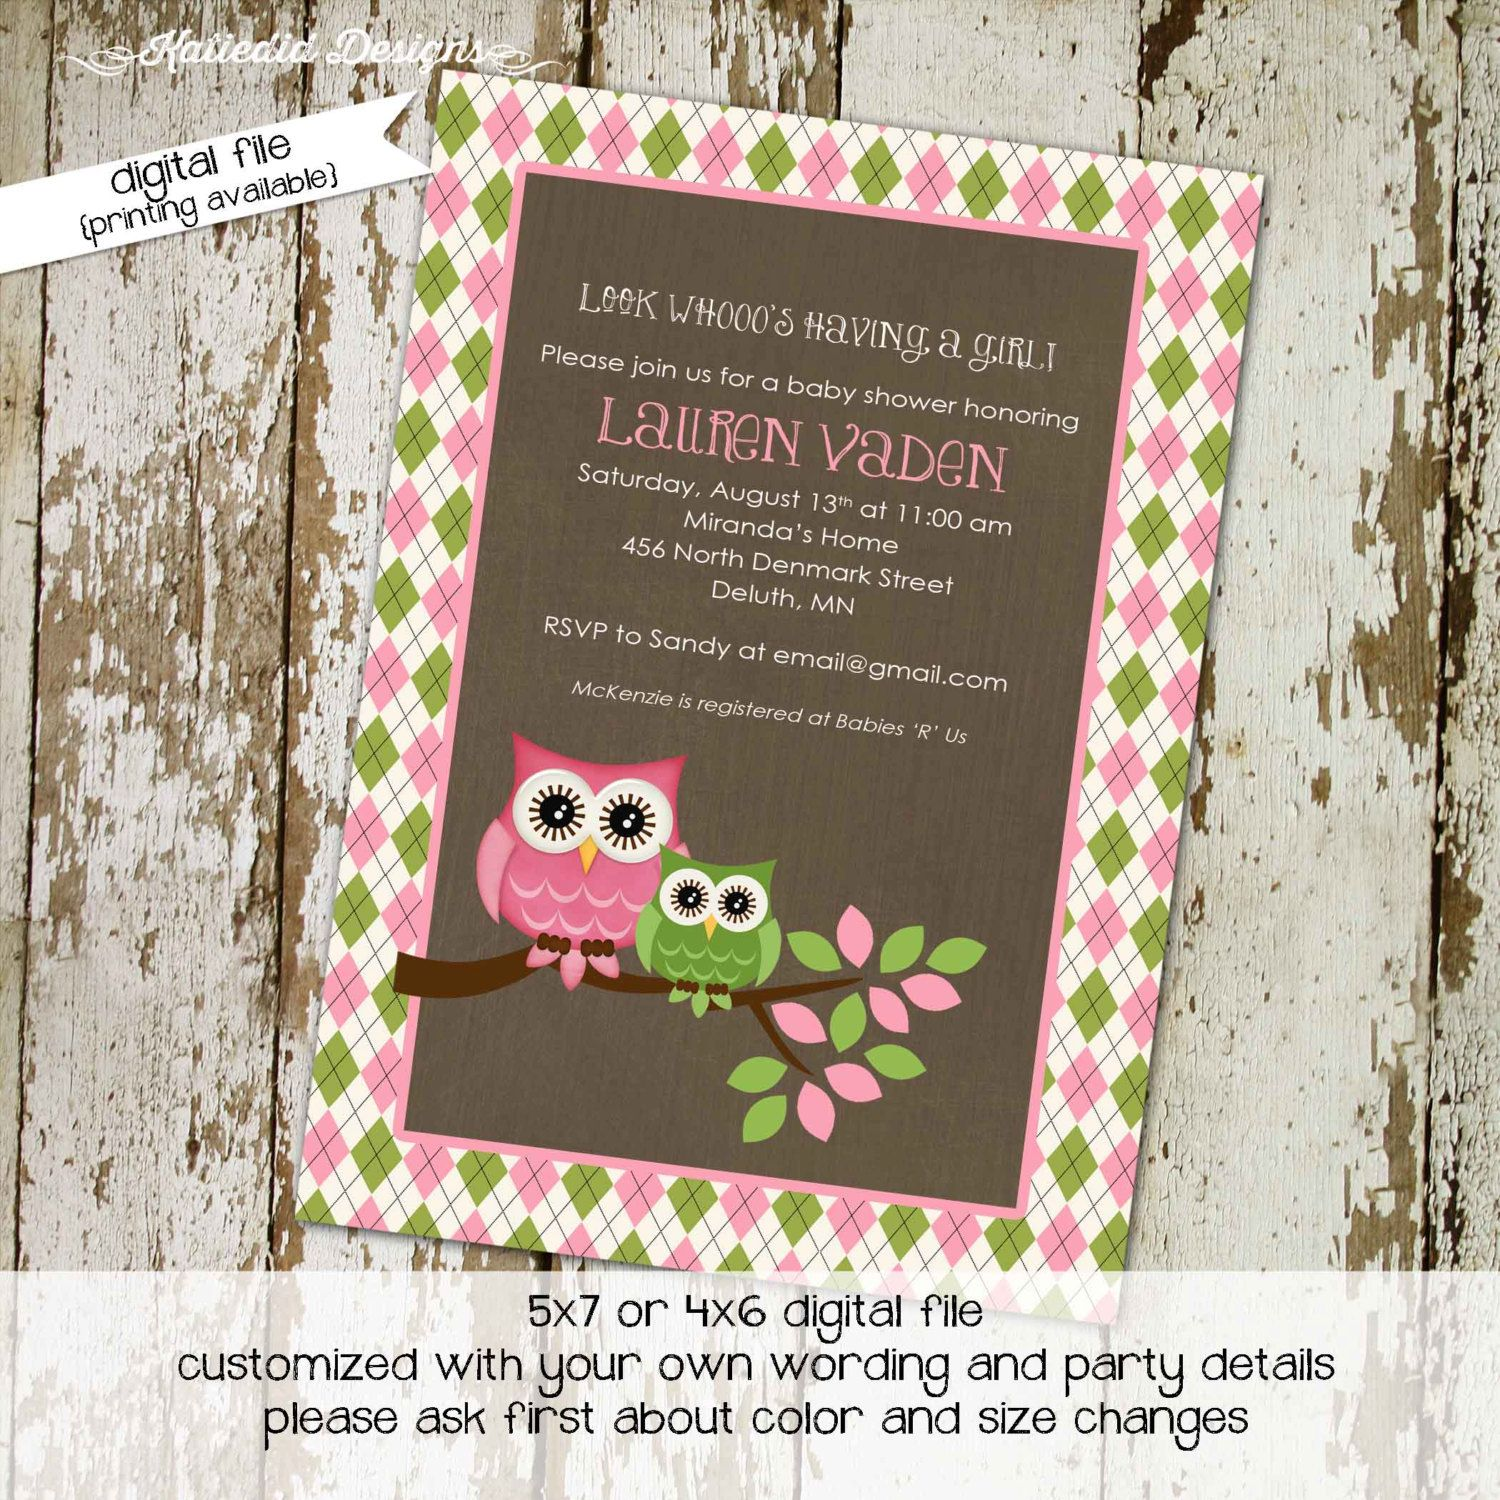 Color book party mn -  Babyshowerinvitation Owl Baby Shower Invitation Owl First Birthday Baby Girl Shower Argyle Couples Shower Book